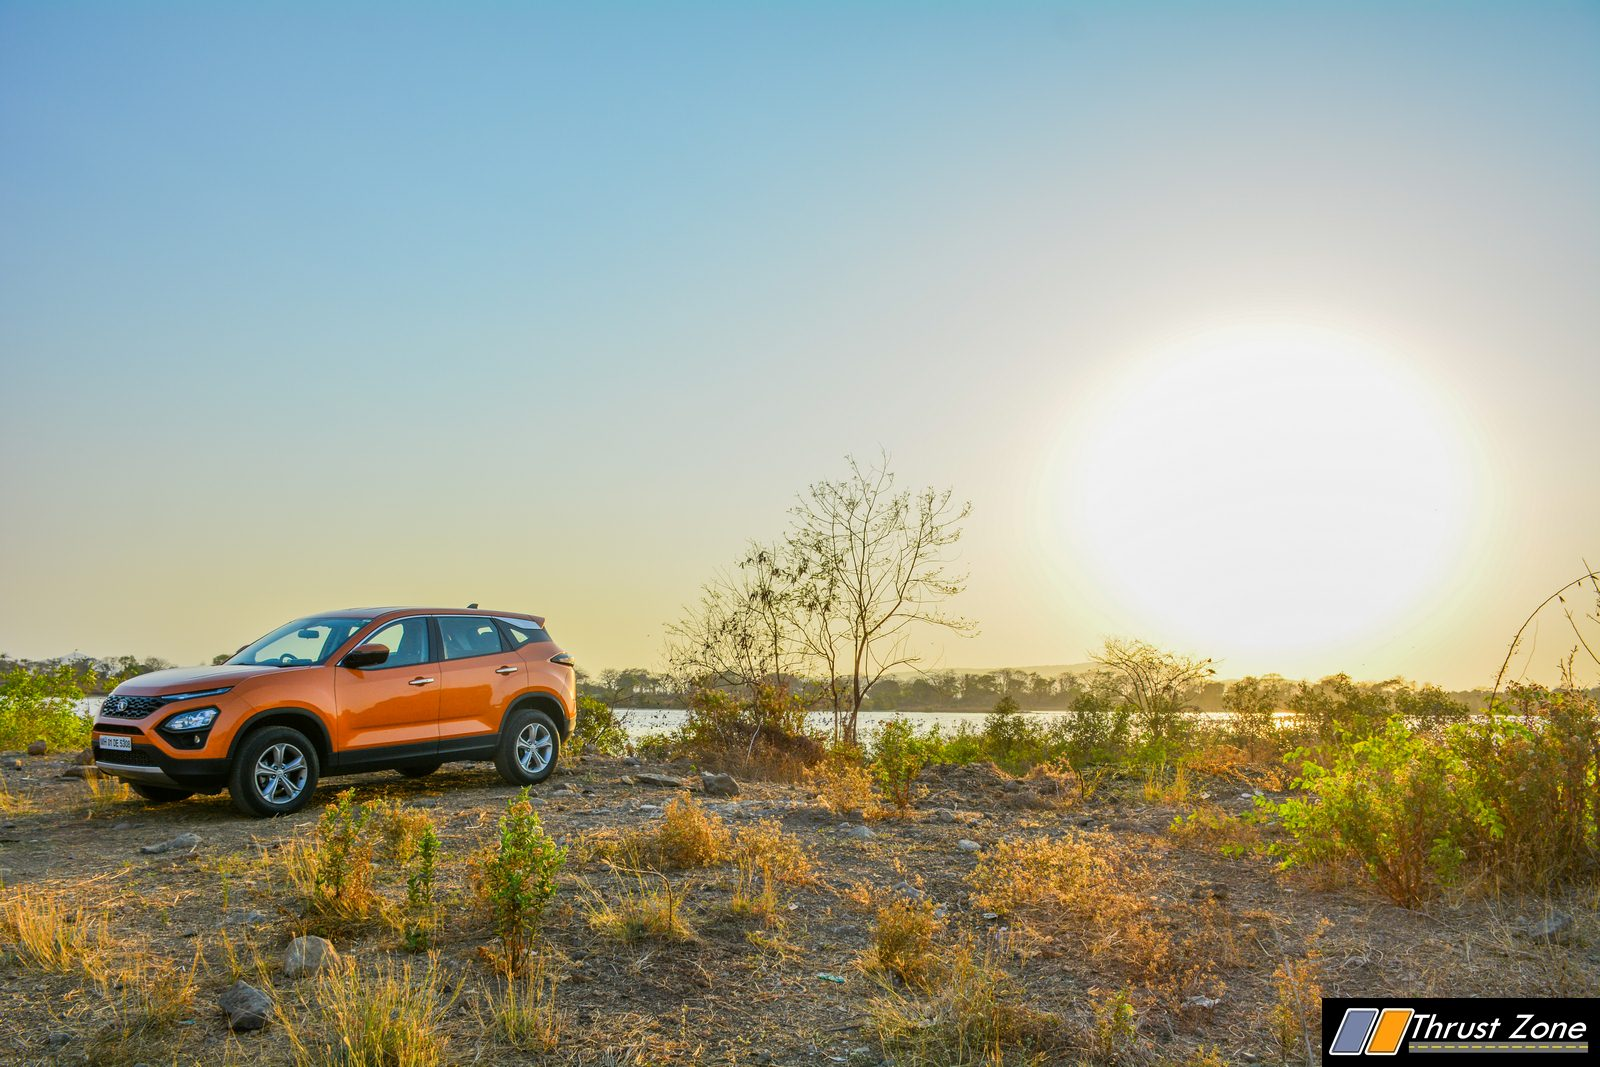 2019-Tata-harrier-diesel-manual-review-4